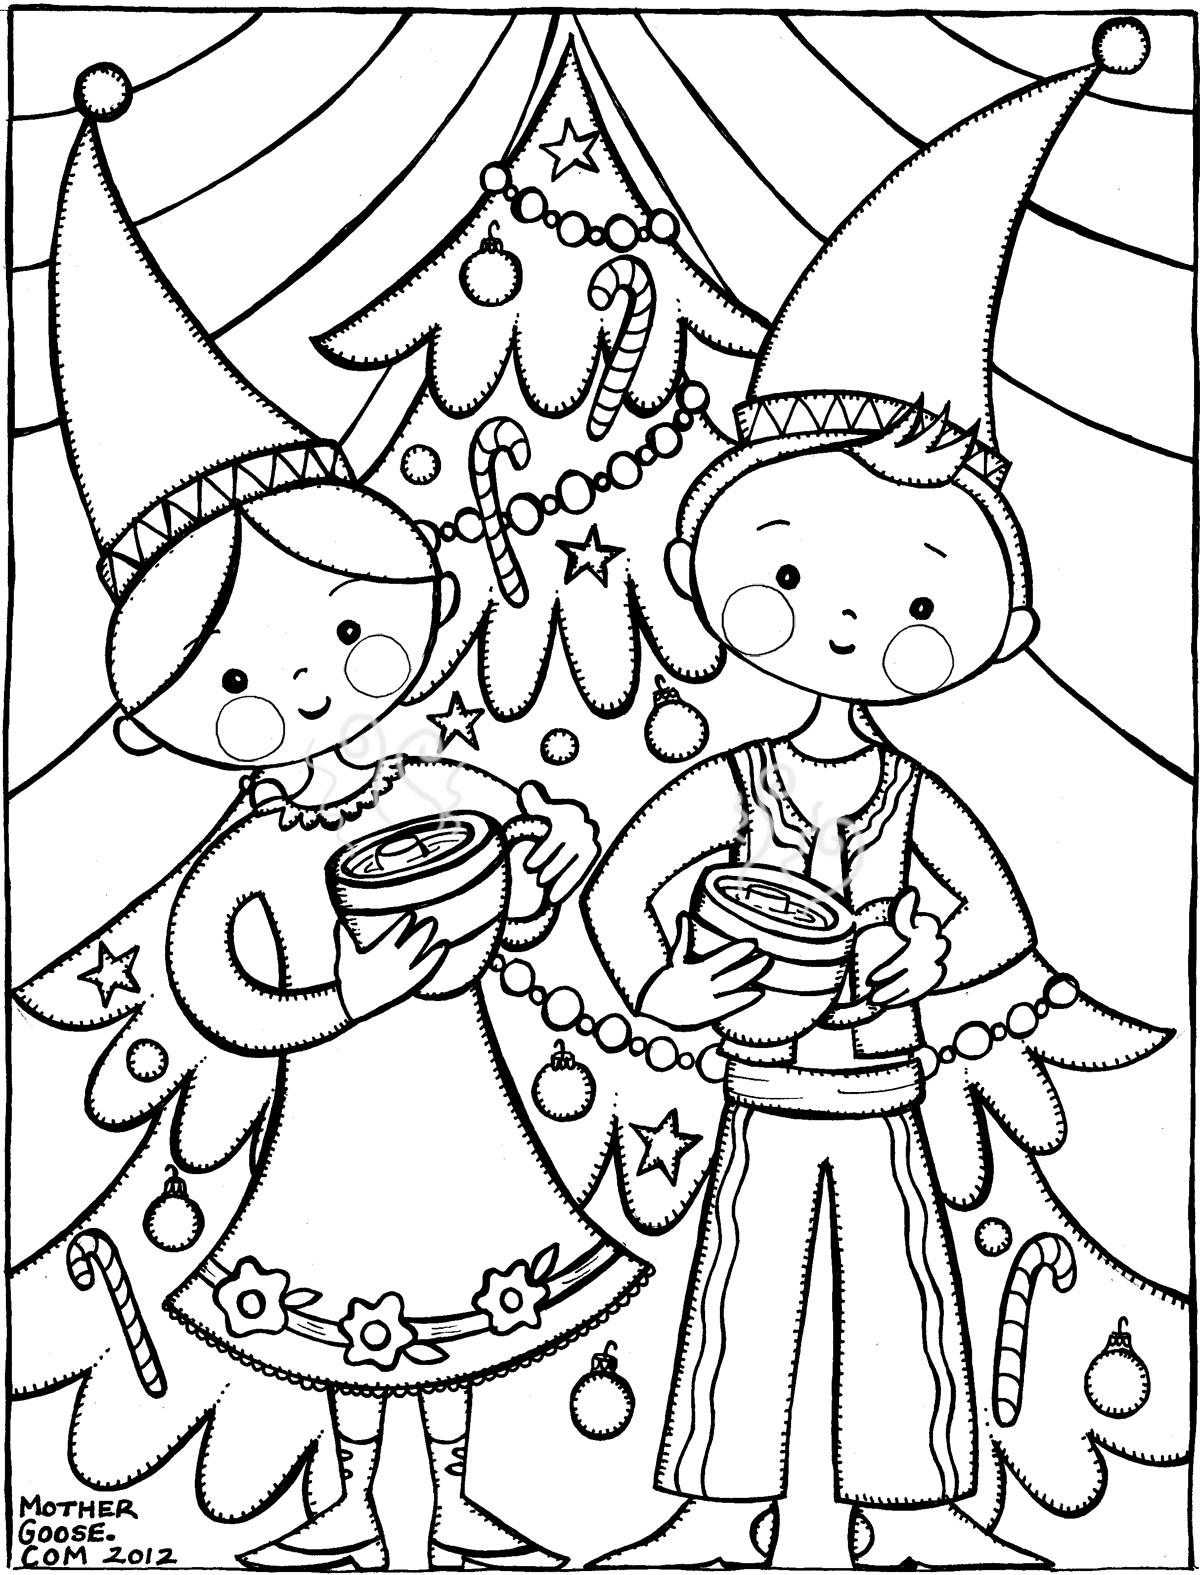 brother coloring pages - brother and sister fighting coloring pages coloring pages